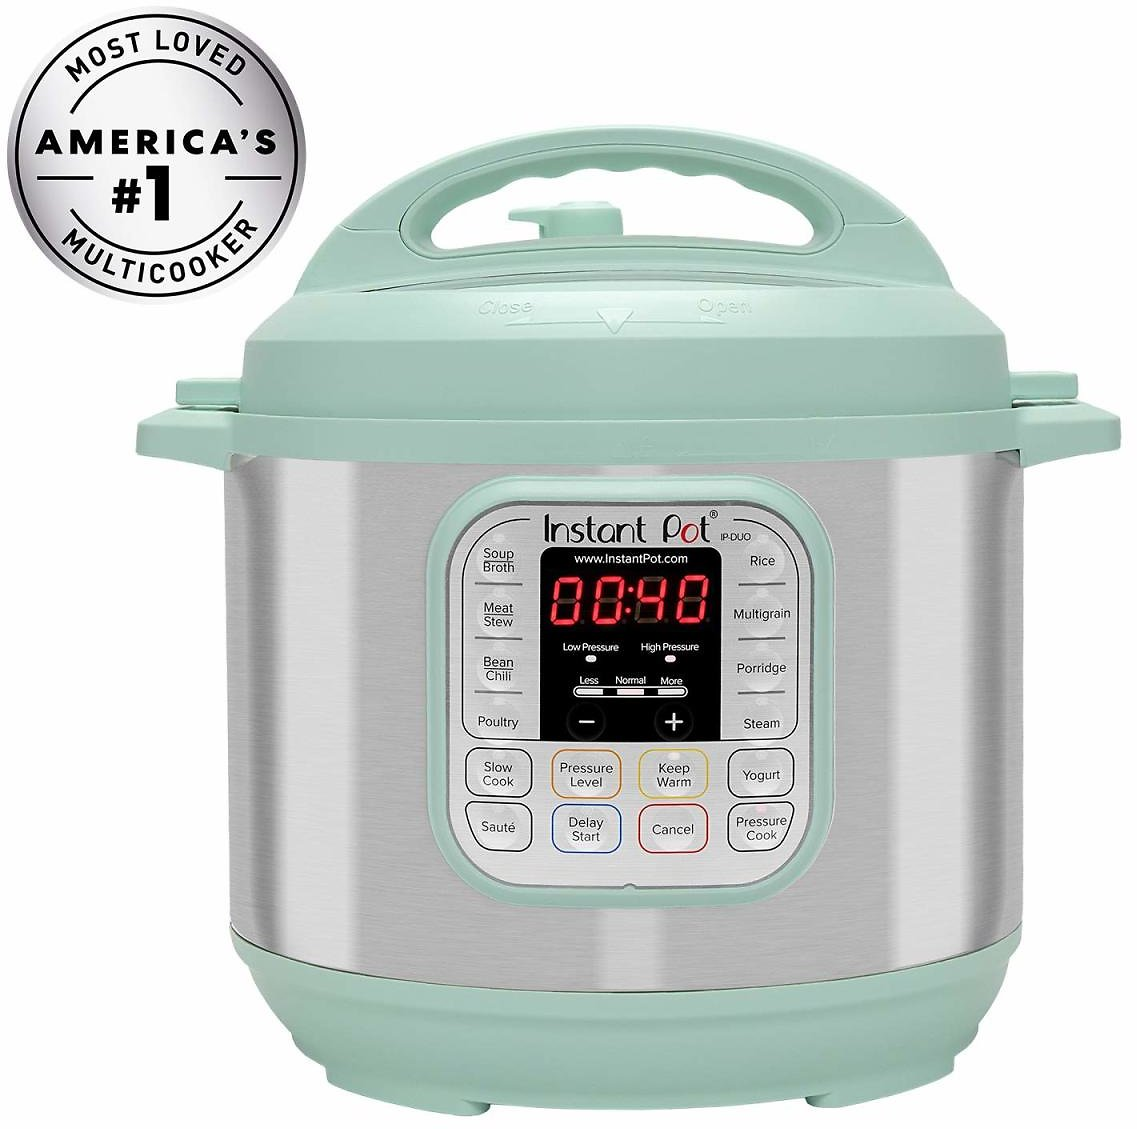 Instant Pot 6Qt. Duo 60 7-in-1 Multi-Use Programmable Pressure Cooker - 3 Colors